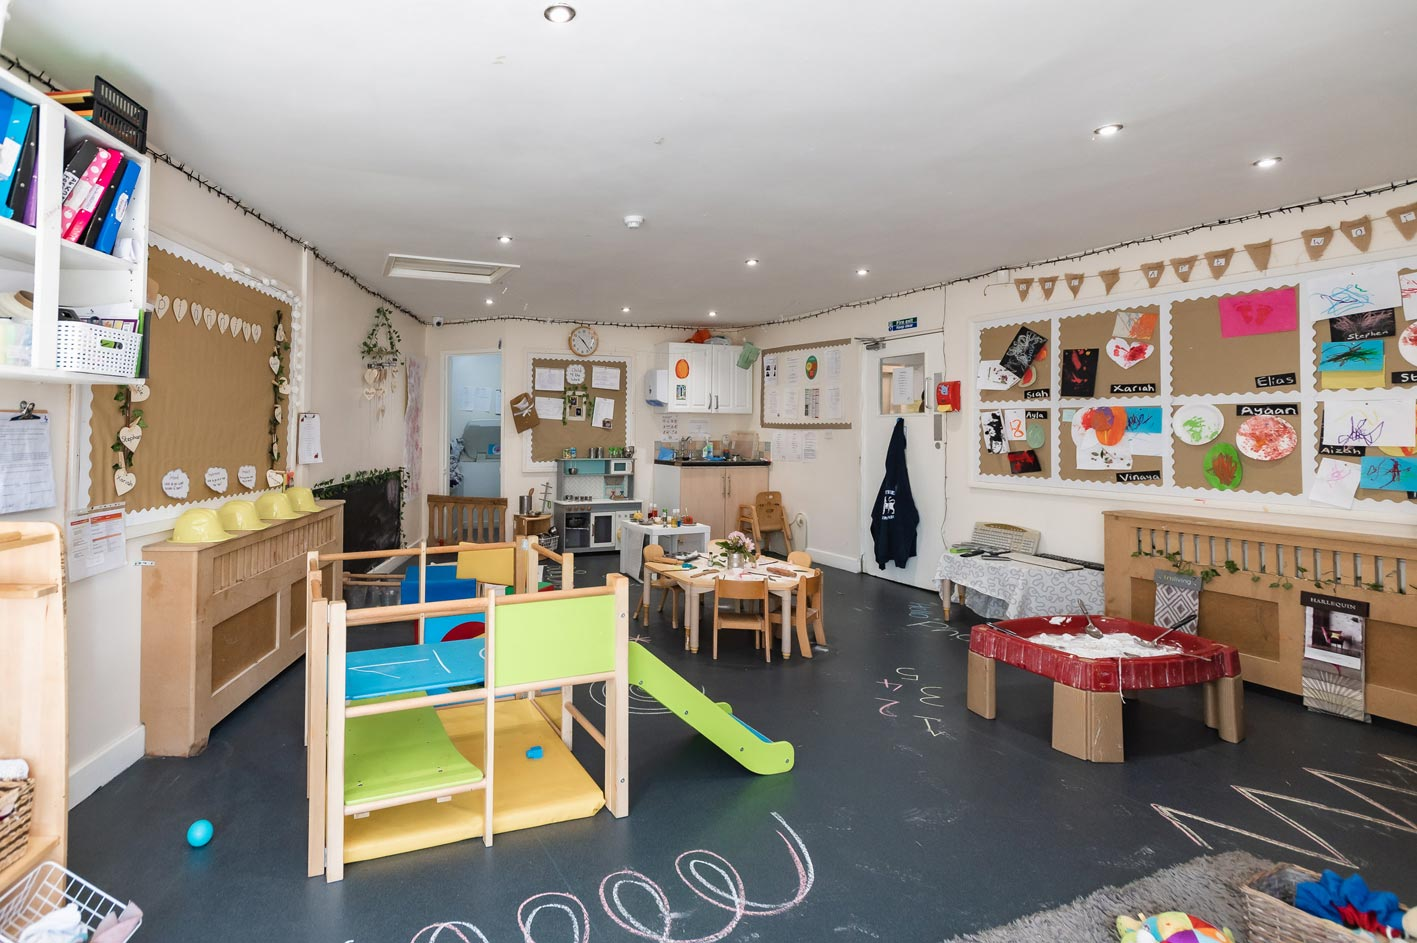 Children can get very creative at Leaps & Bounds Day Nursery in Edgbaston!